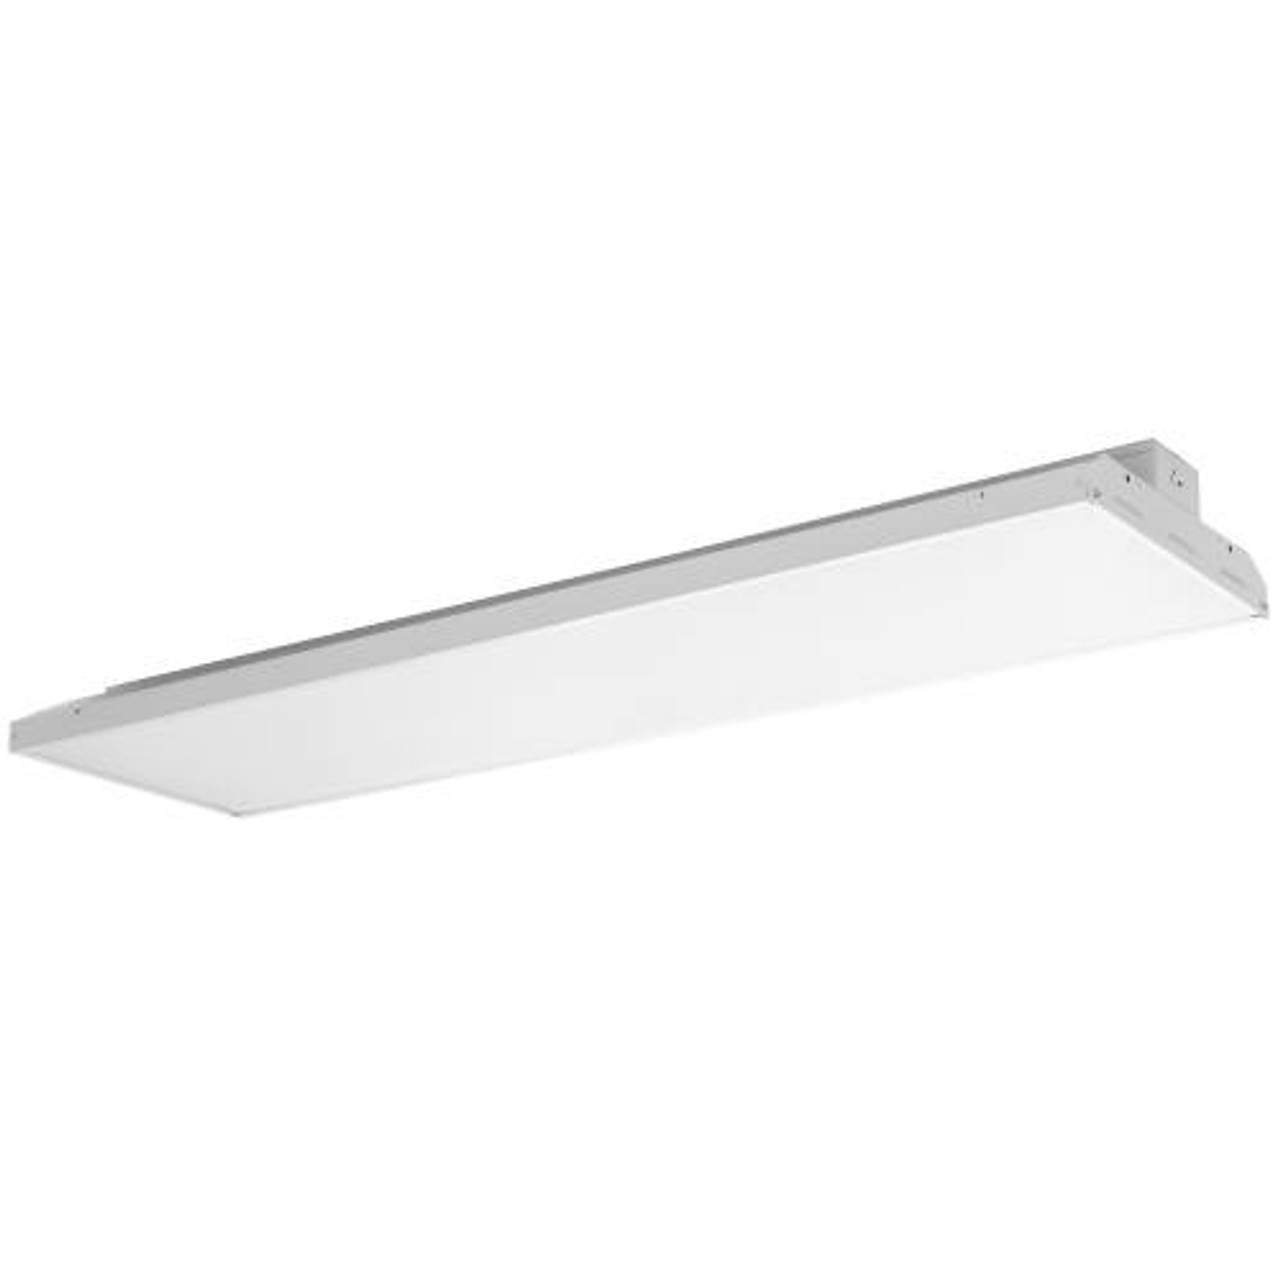 Slim Linear LED High Bay